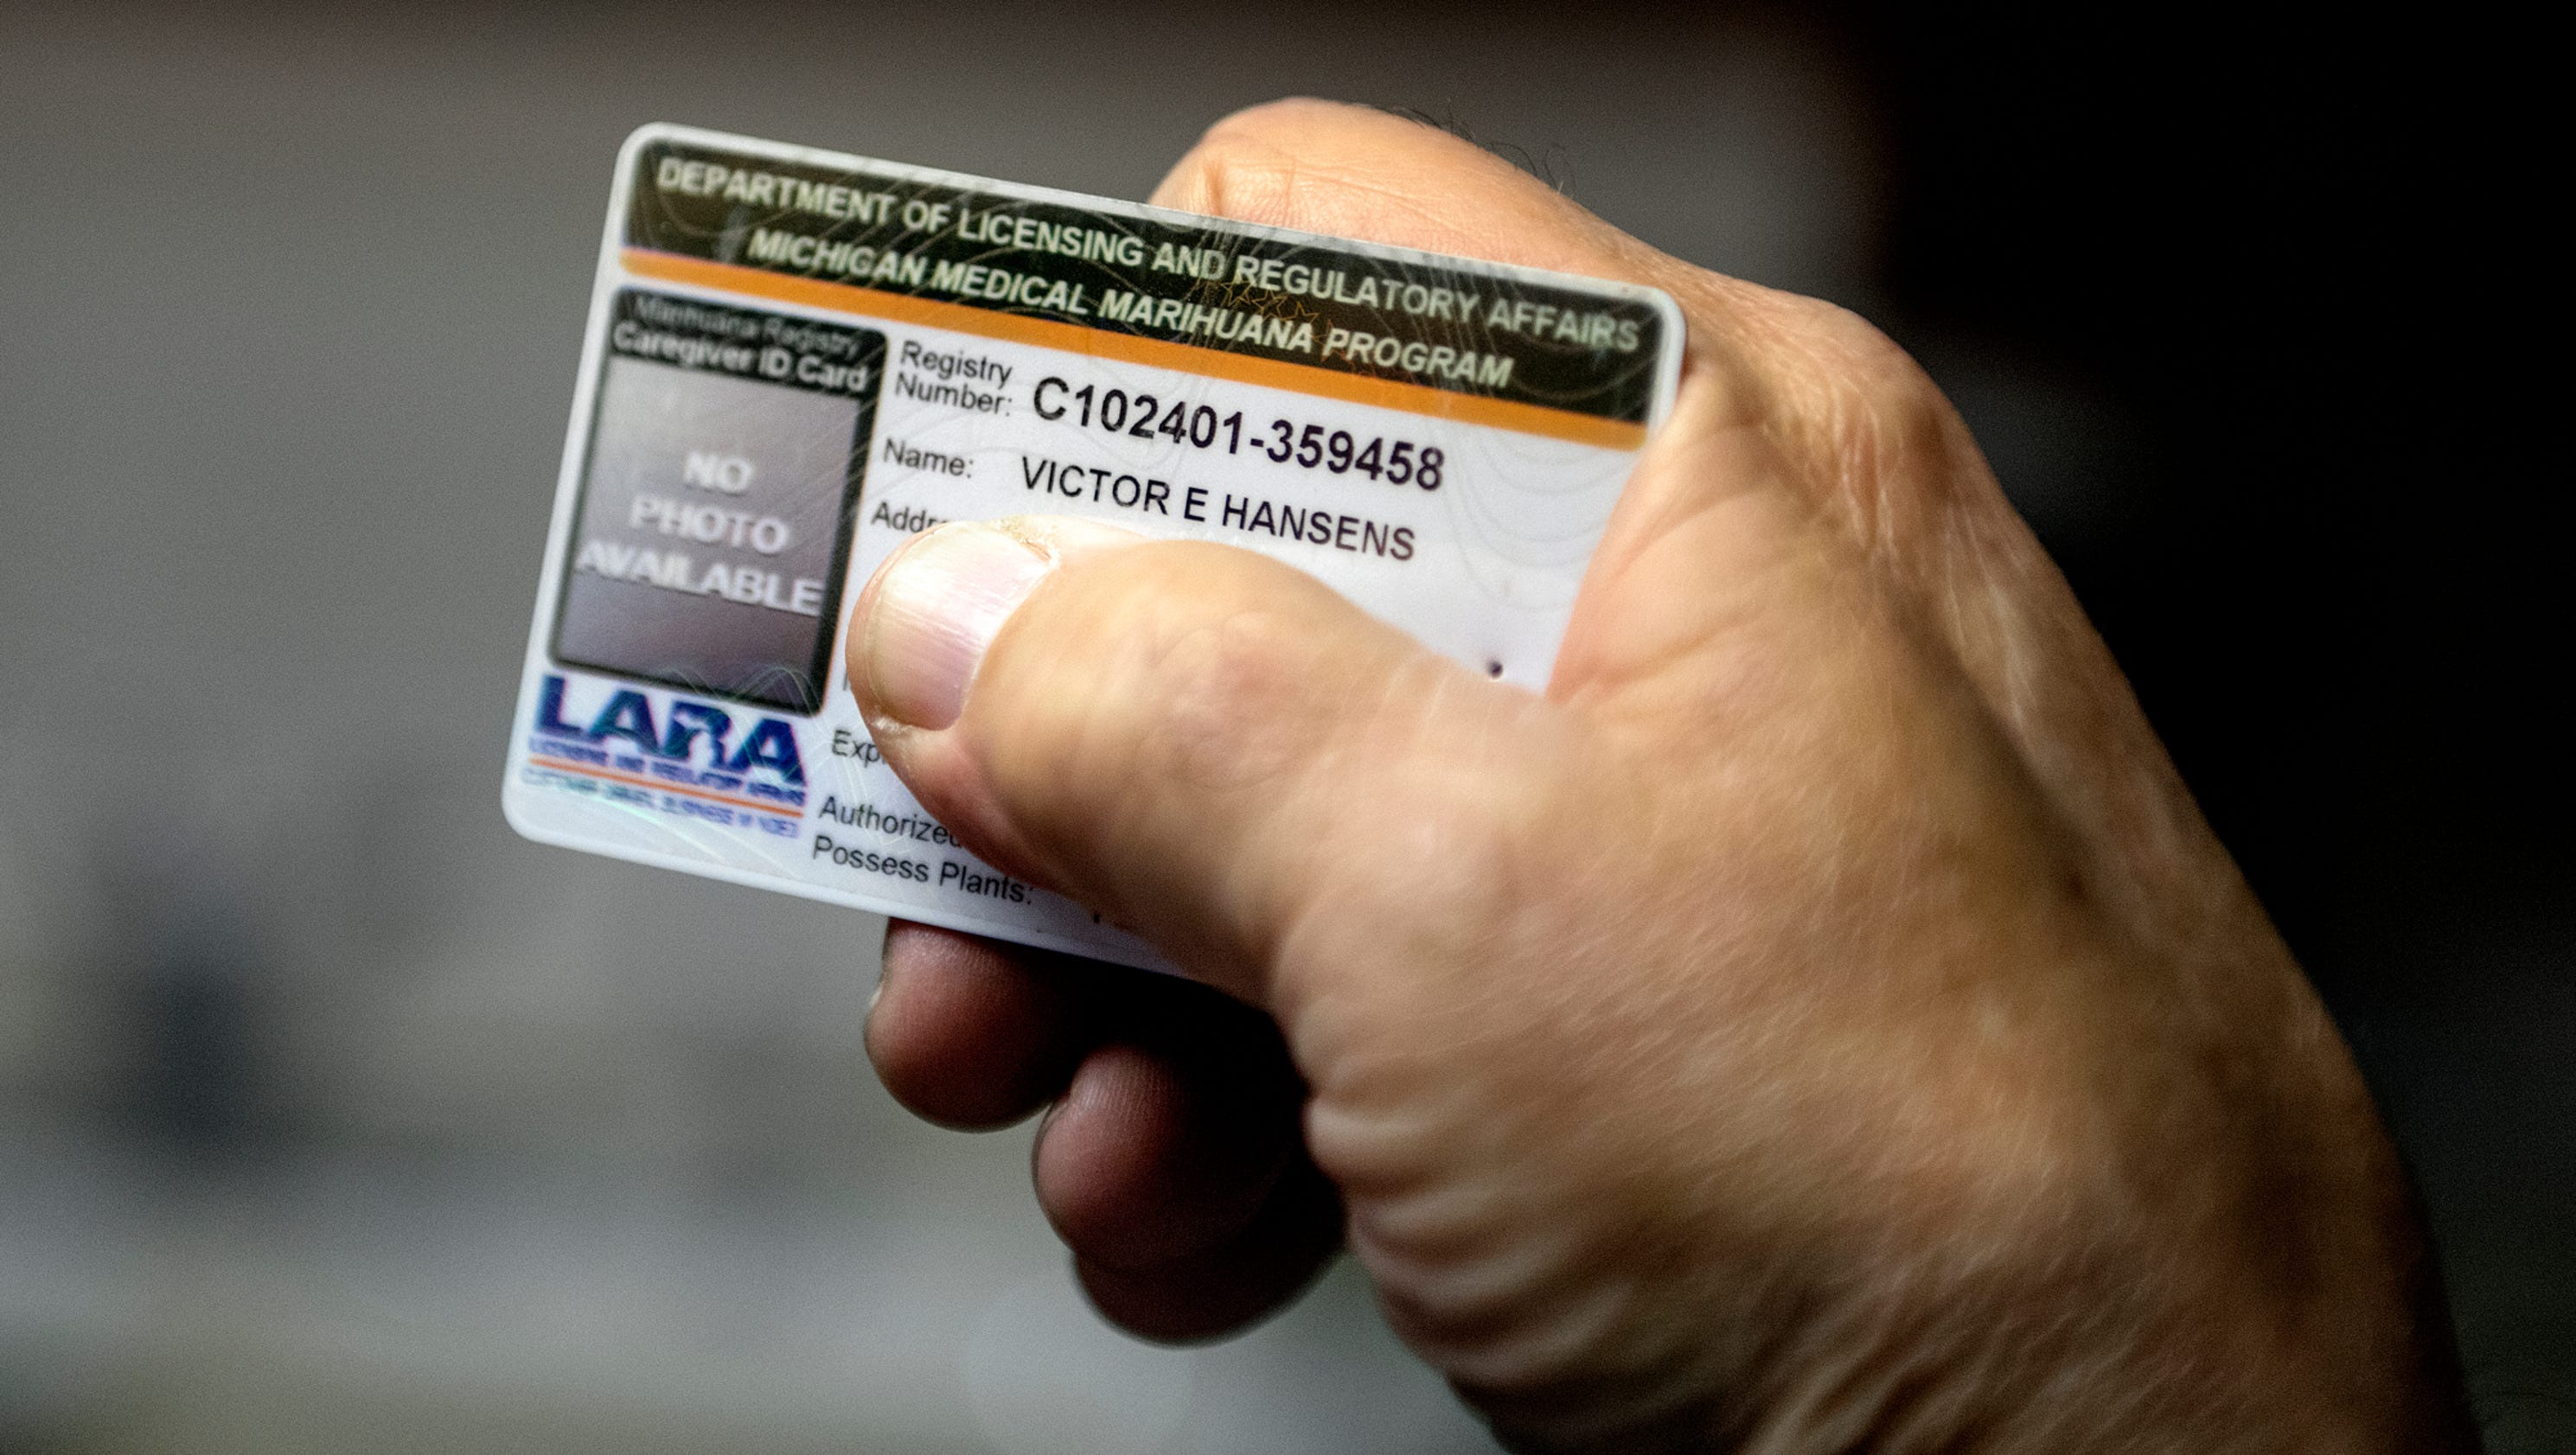 What does it take to get a medical marijuana card in Michigan?